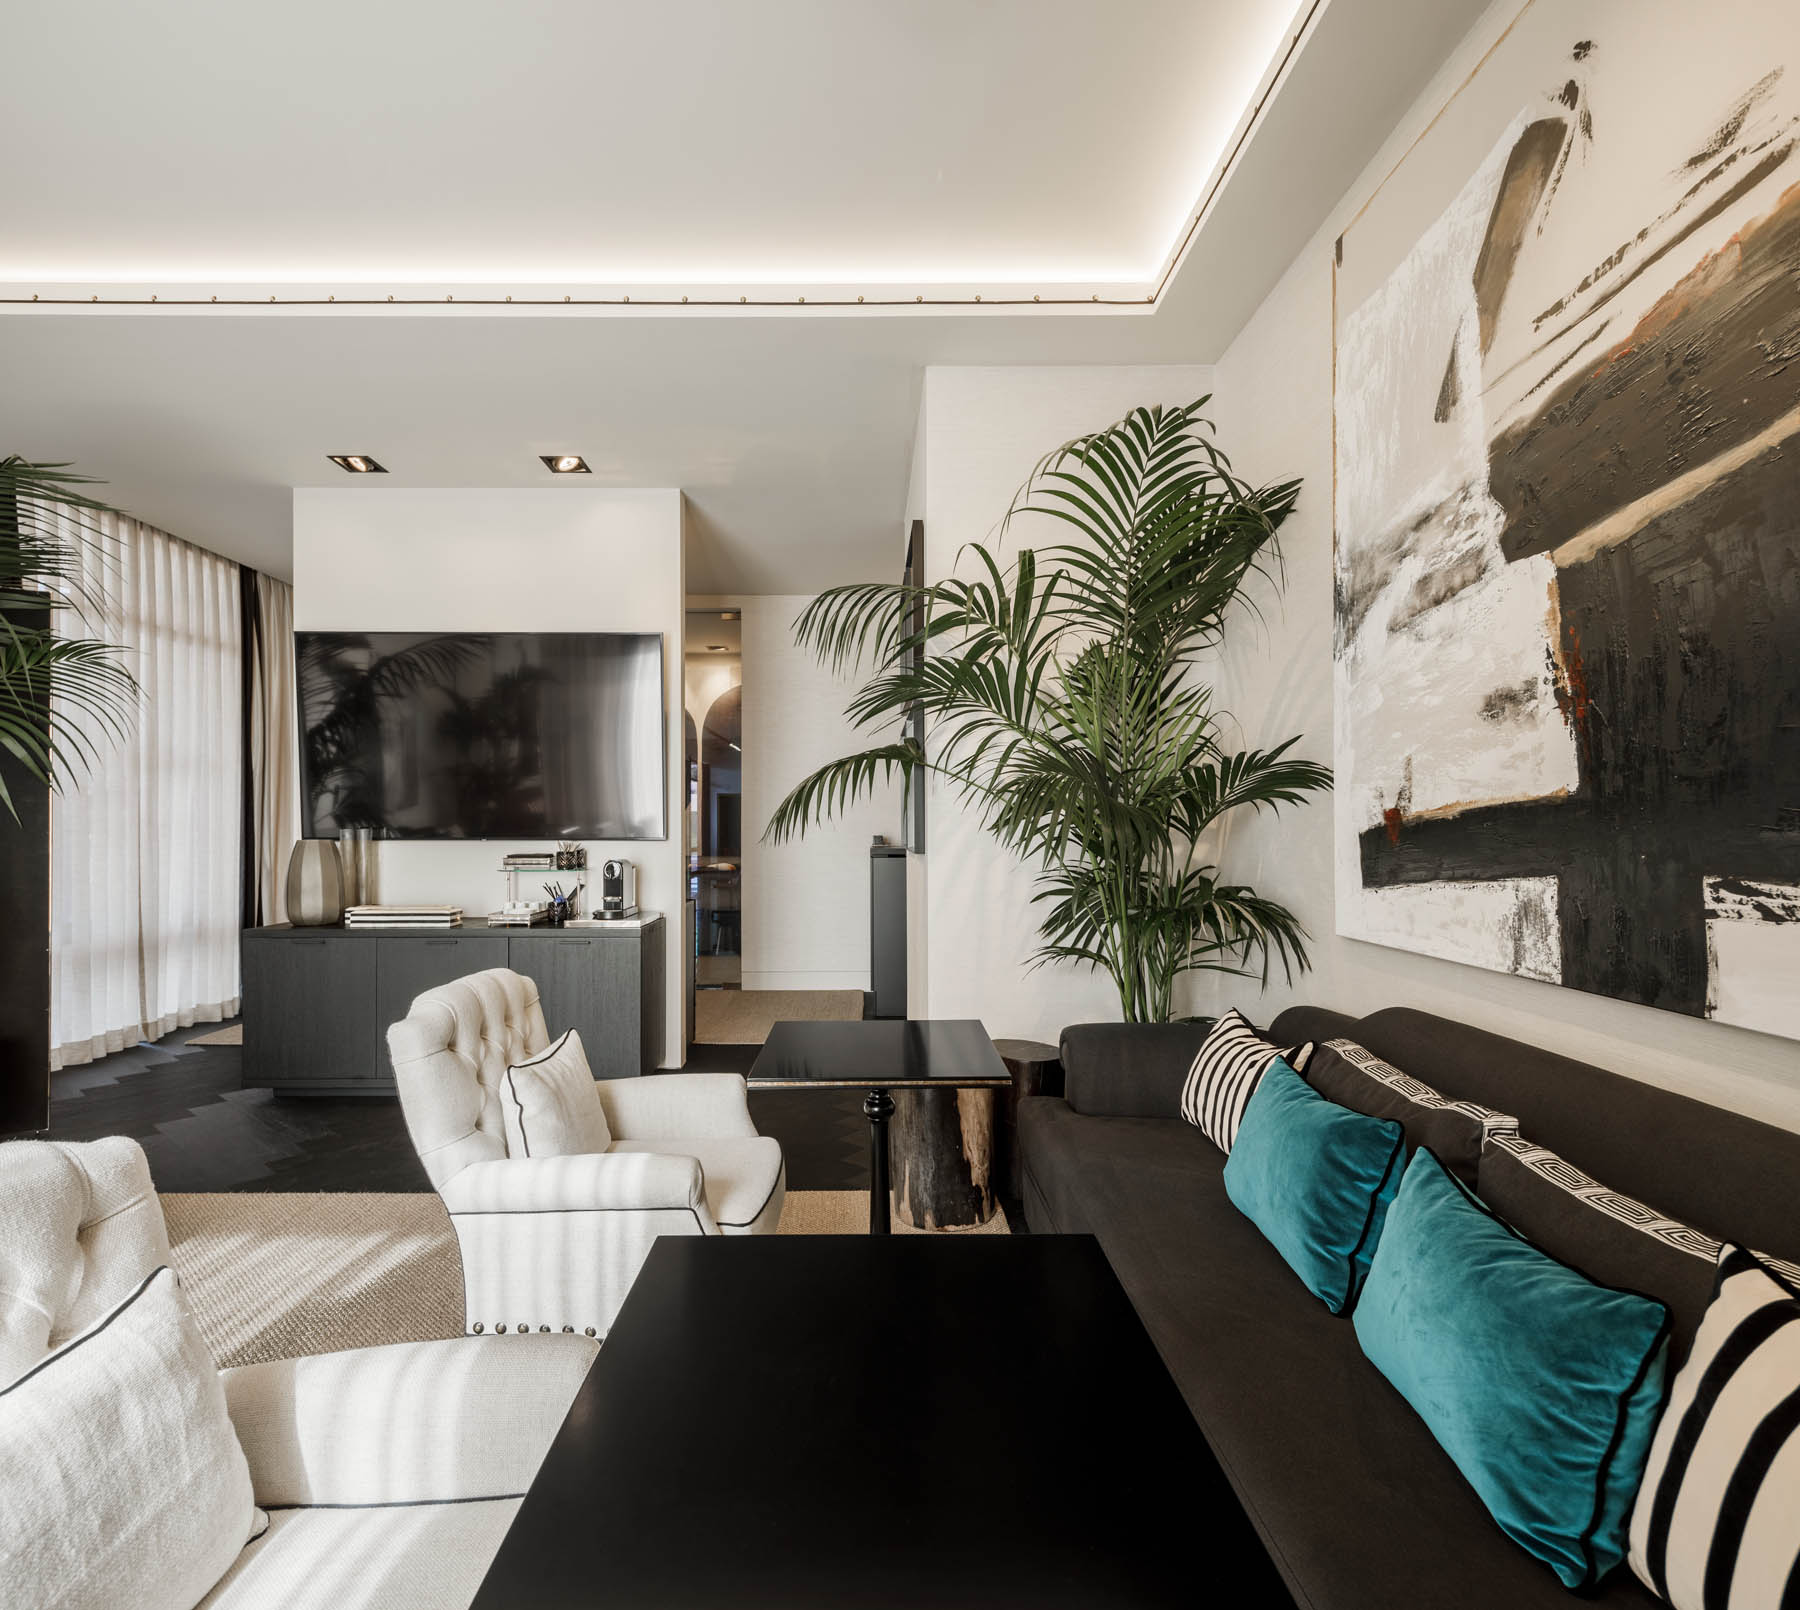 Safeport opens new Cascais Lounge